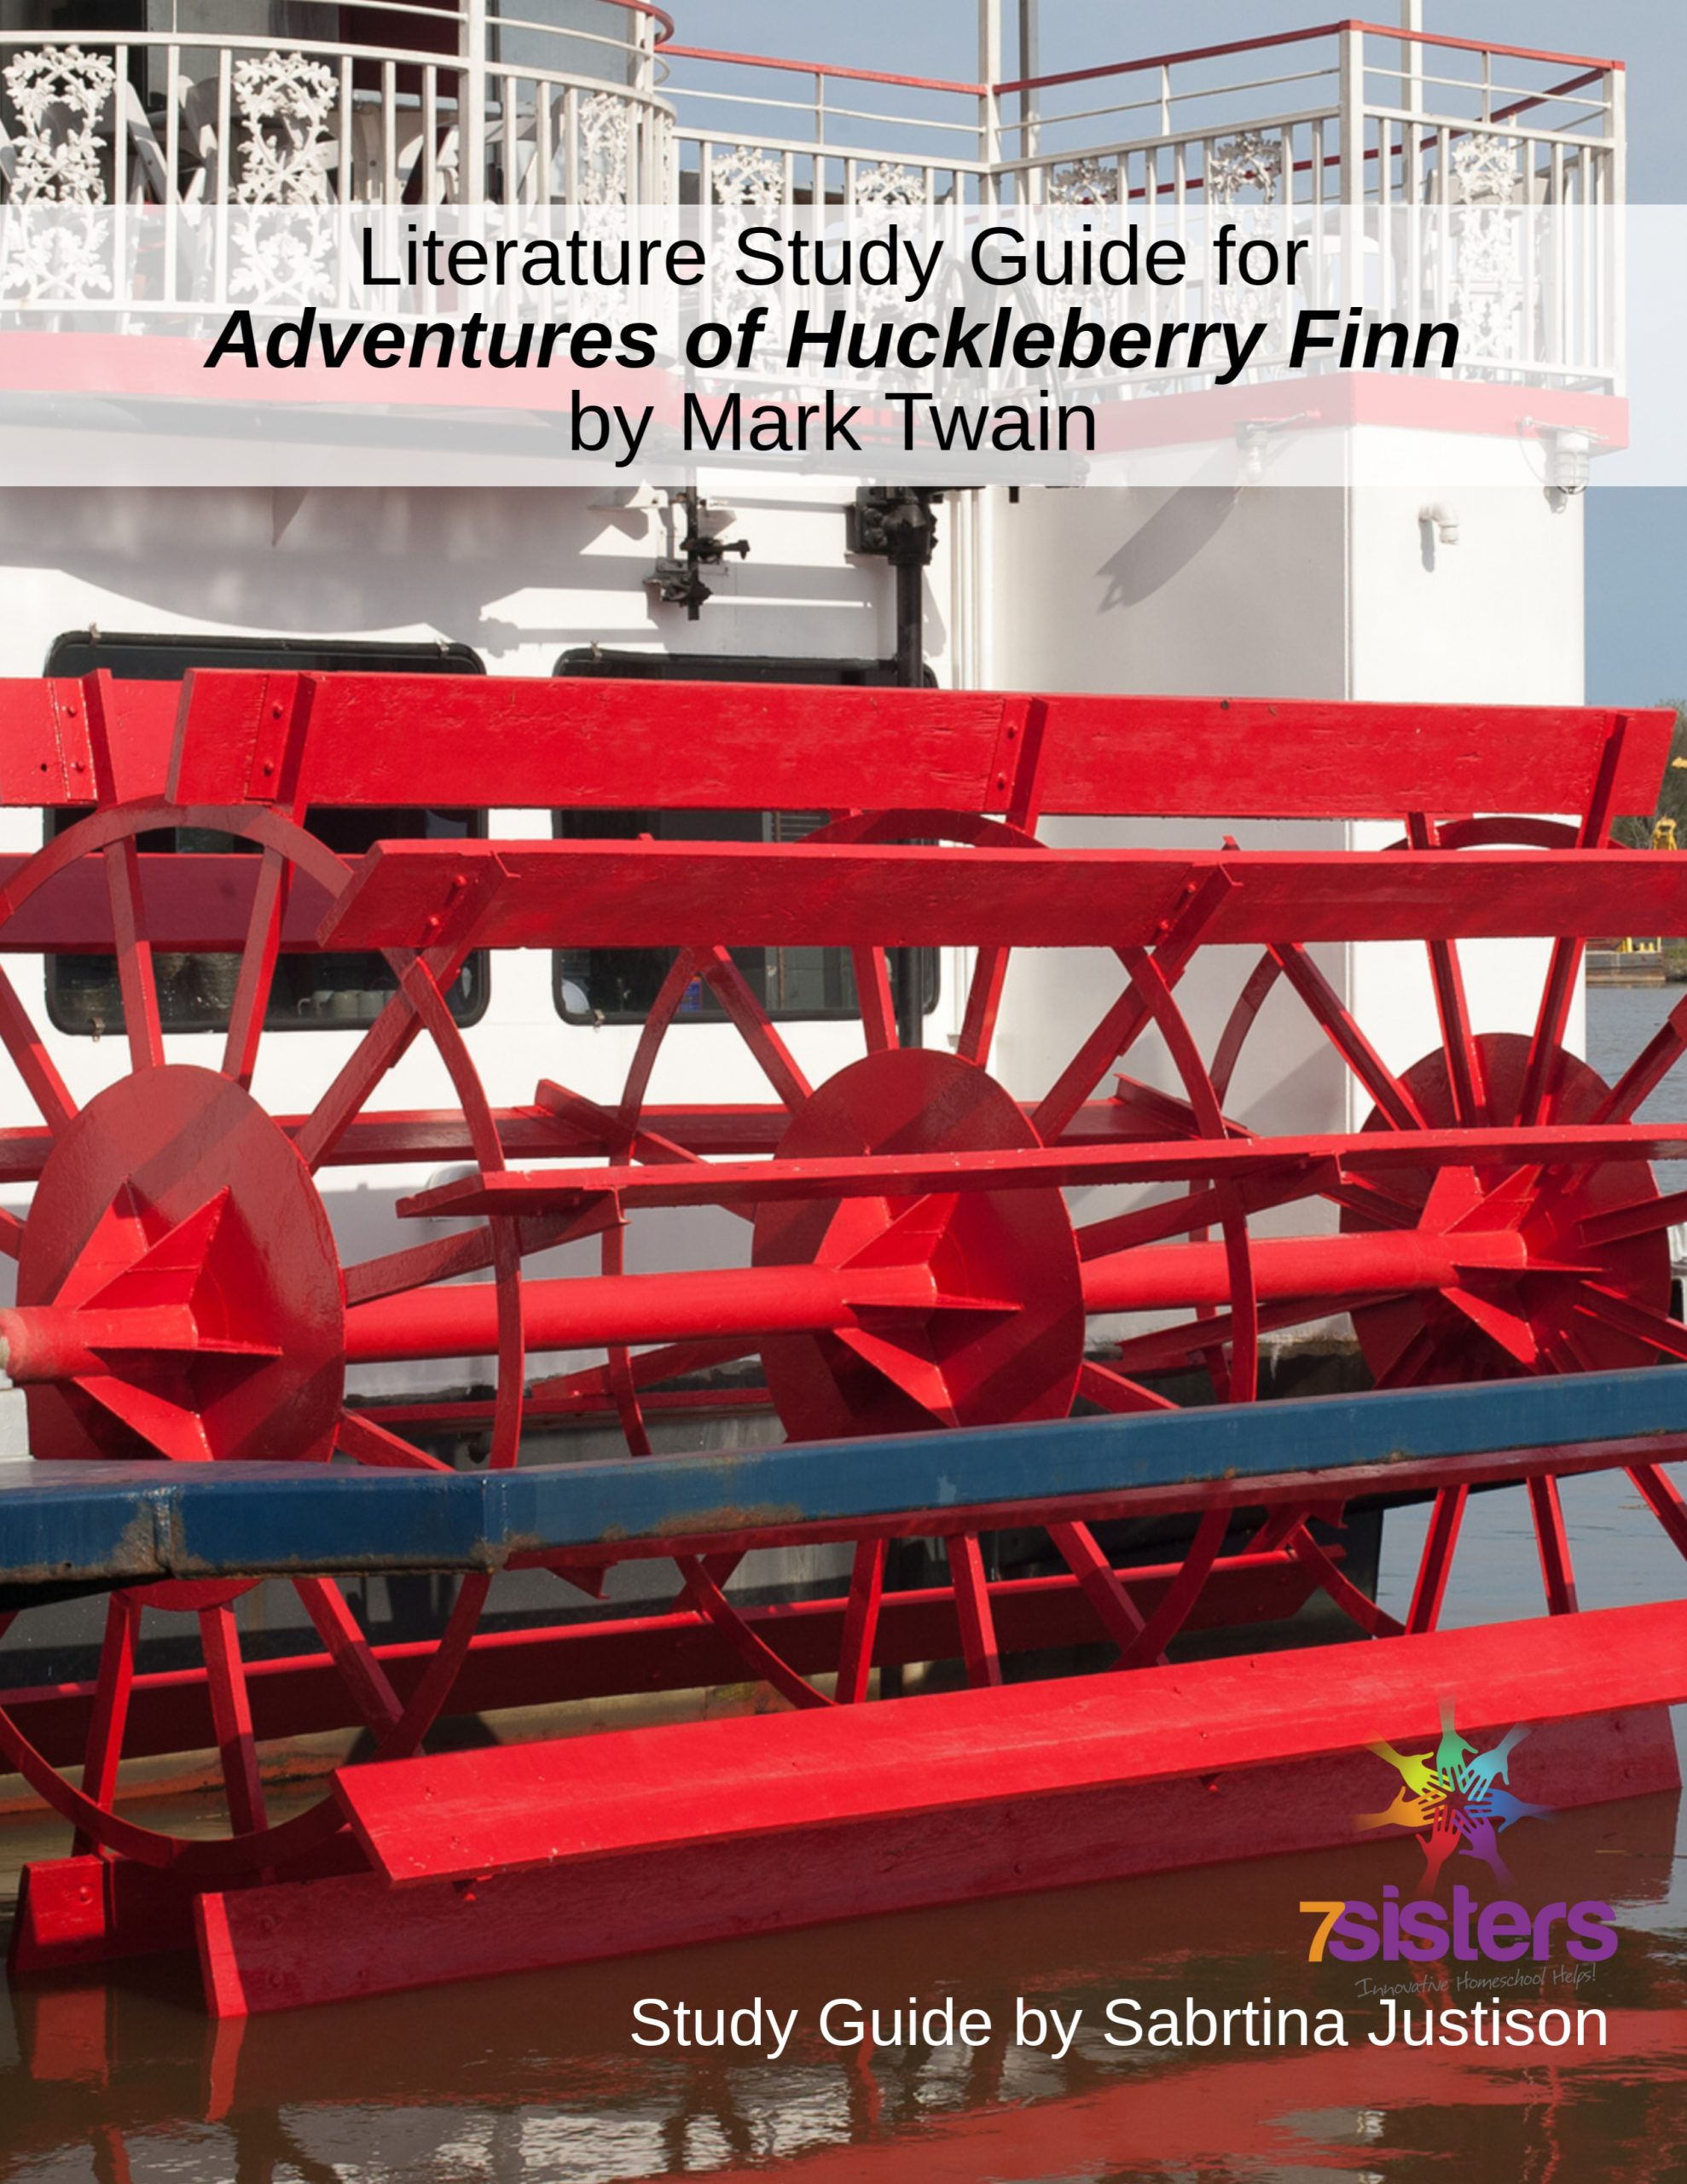 The Adventures of Huckleberry Finn Study Guide. Not boring, no-busywork, don't-kill-the-book literature study guide for homeschool teens.